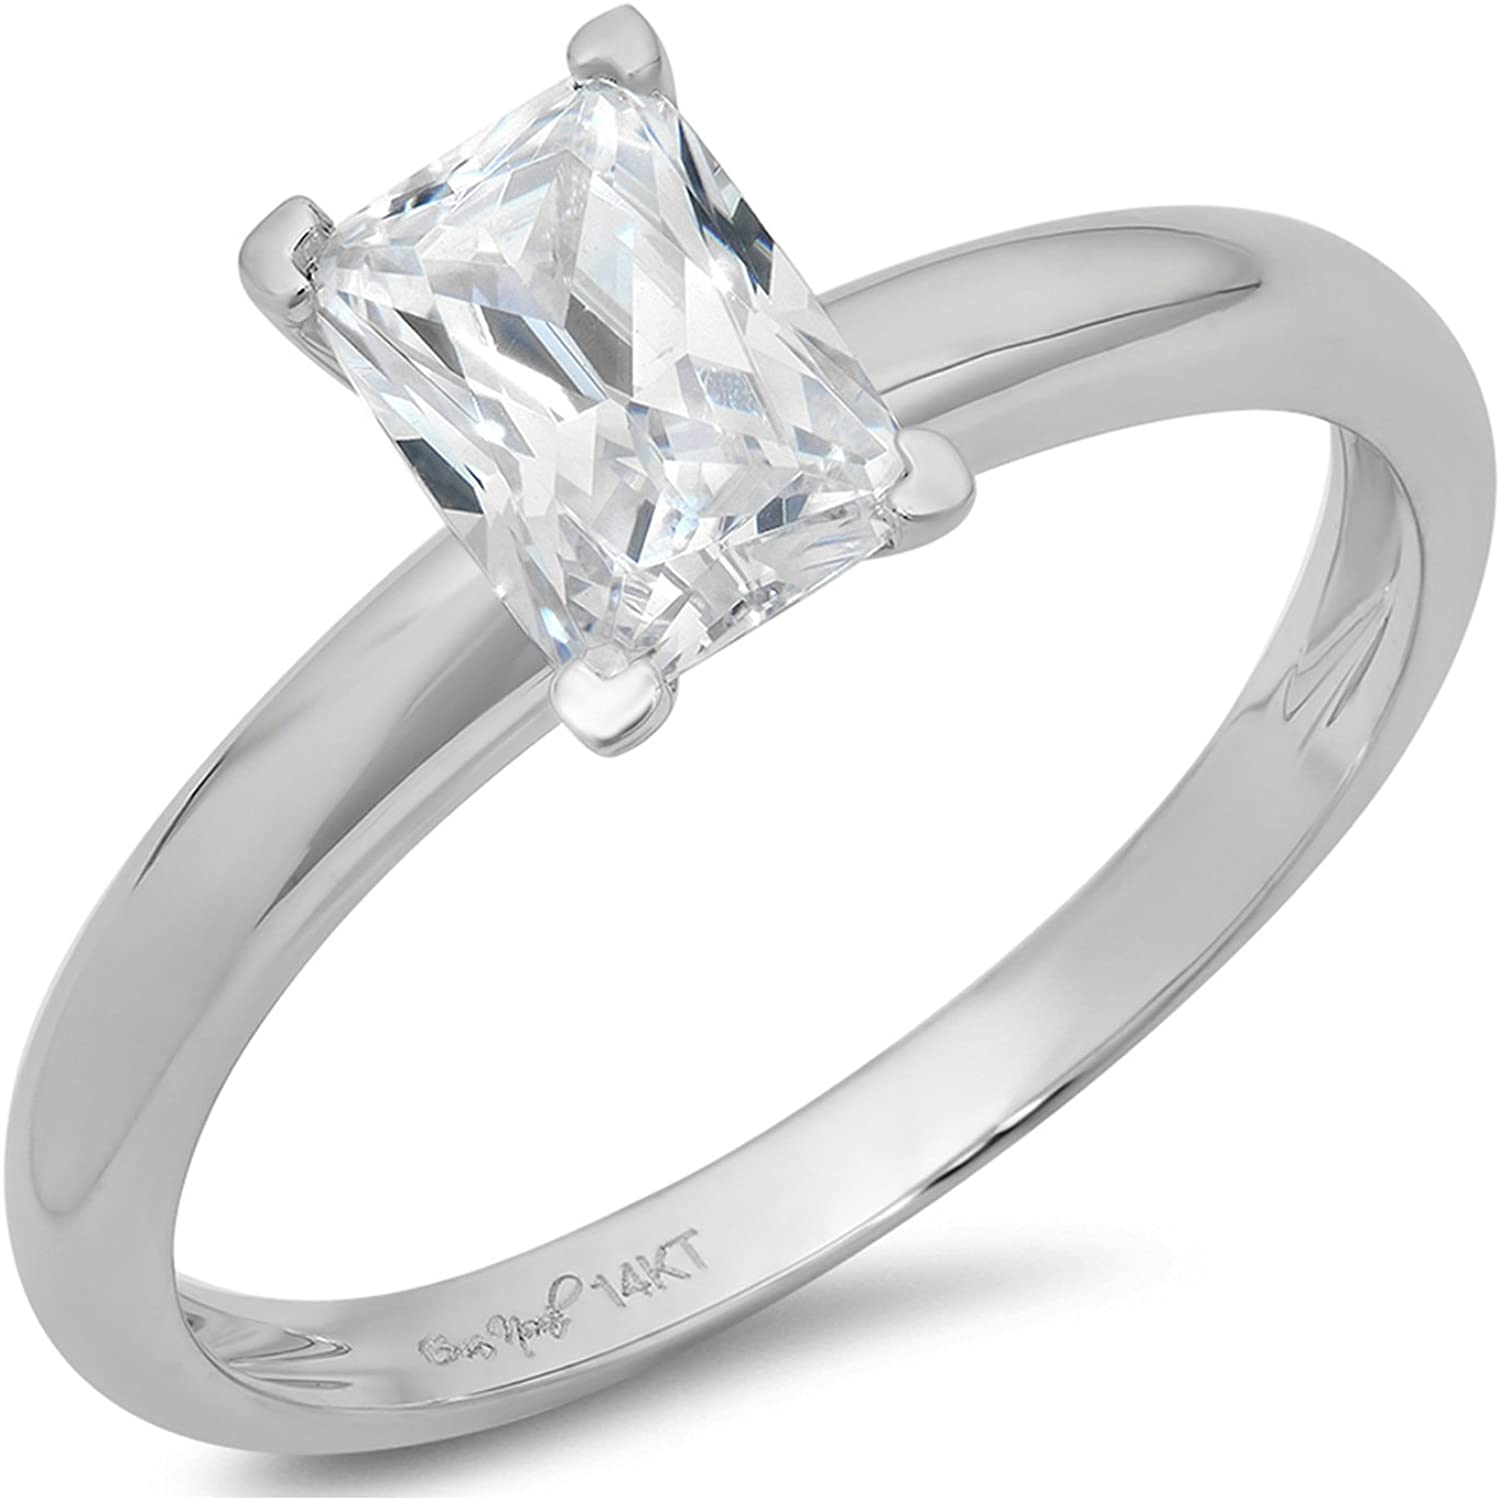 Clara Pucci 1.2 Ct Emerald Brilliant Cut Solitaire Engagement Promise Wedding Bridal Anniversary Ring 14K White Gold